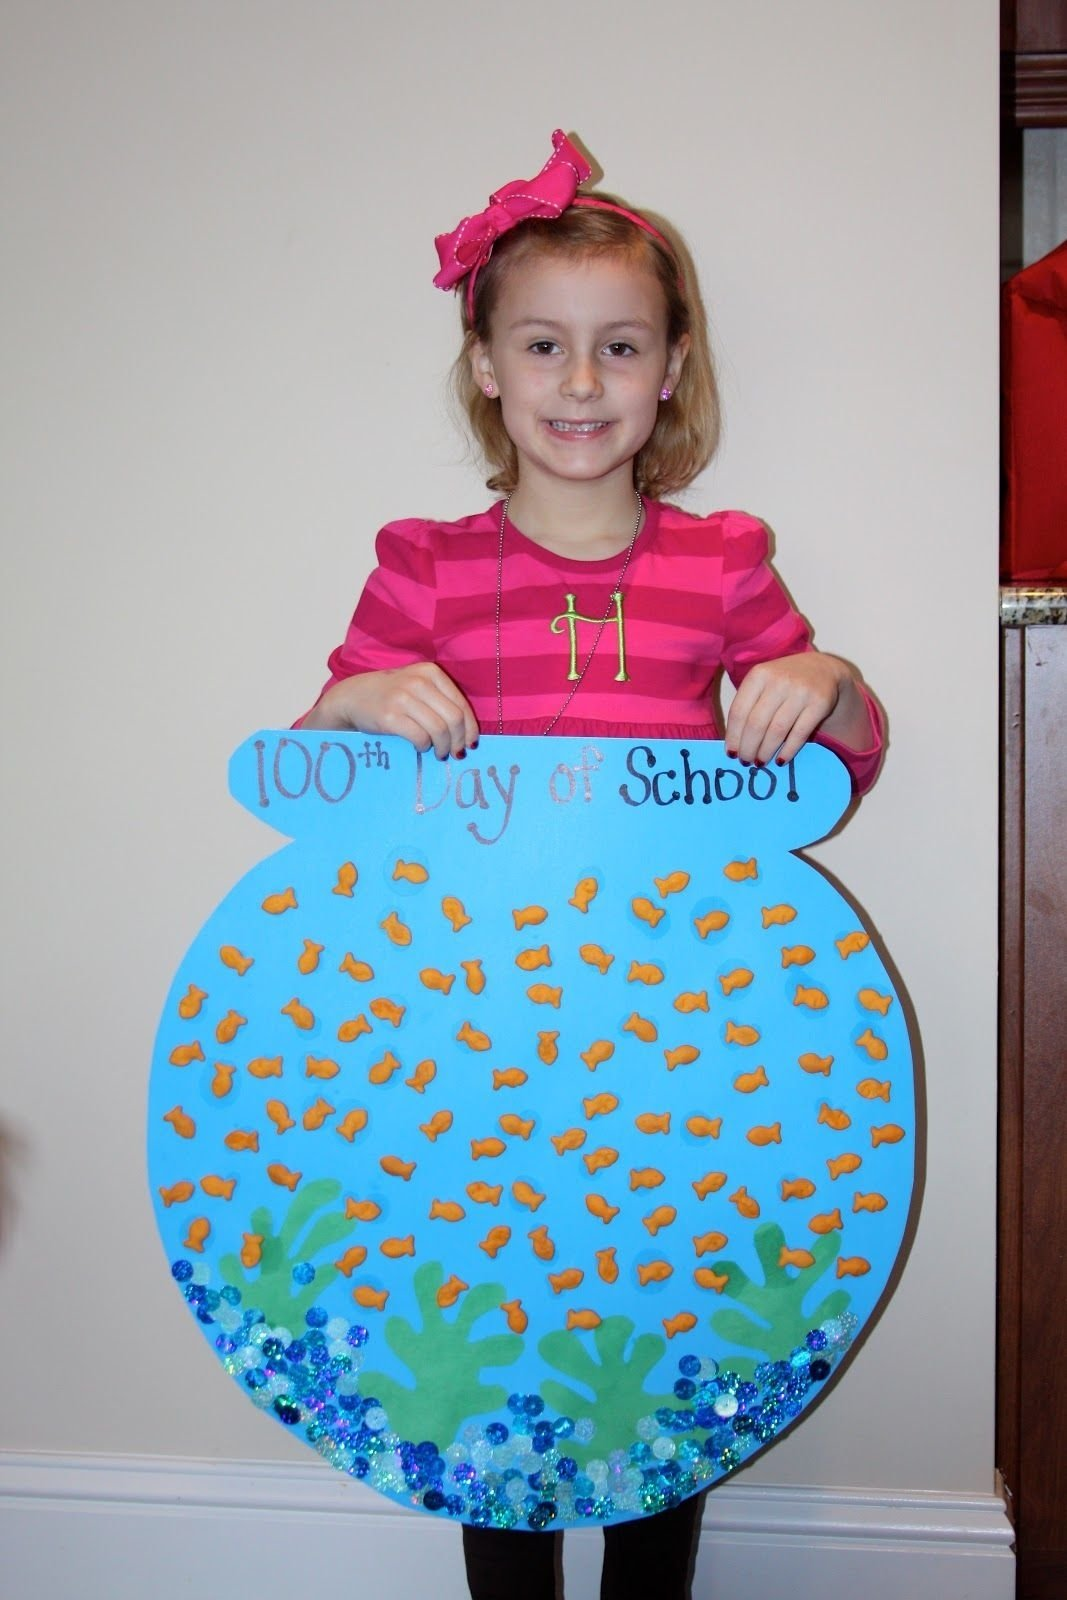 10 Amazing Ideas For The 100Th Day Of School little hip chicks 100th day of school kids pinterest school 1 2021